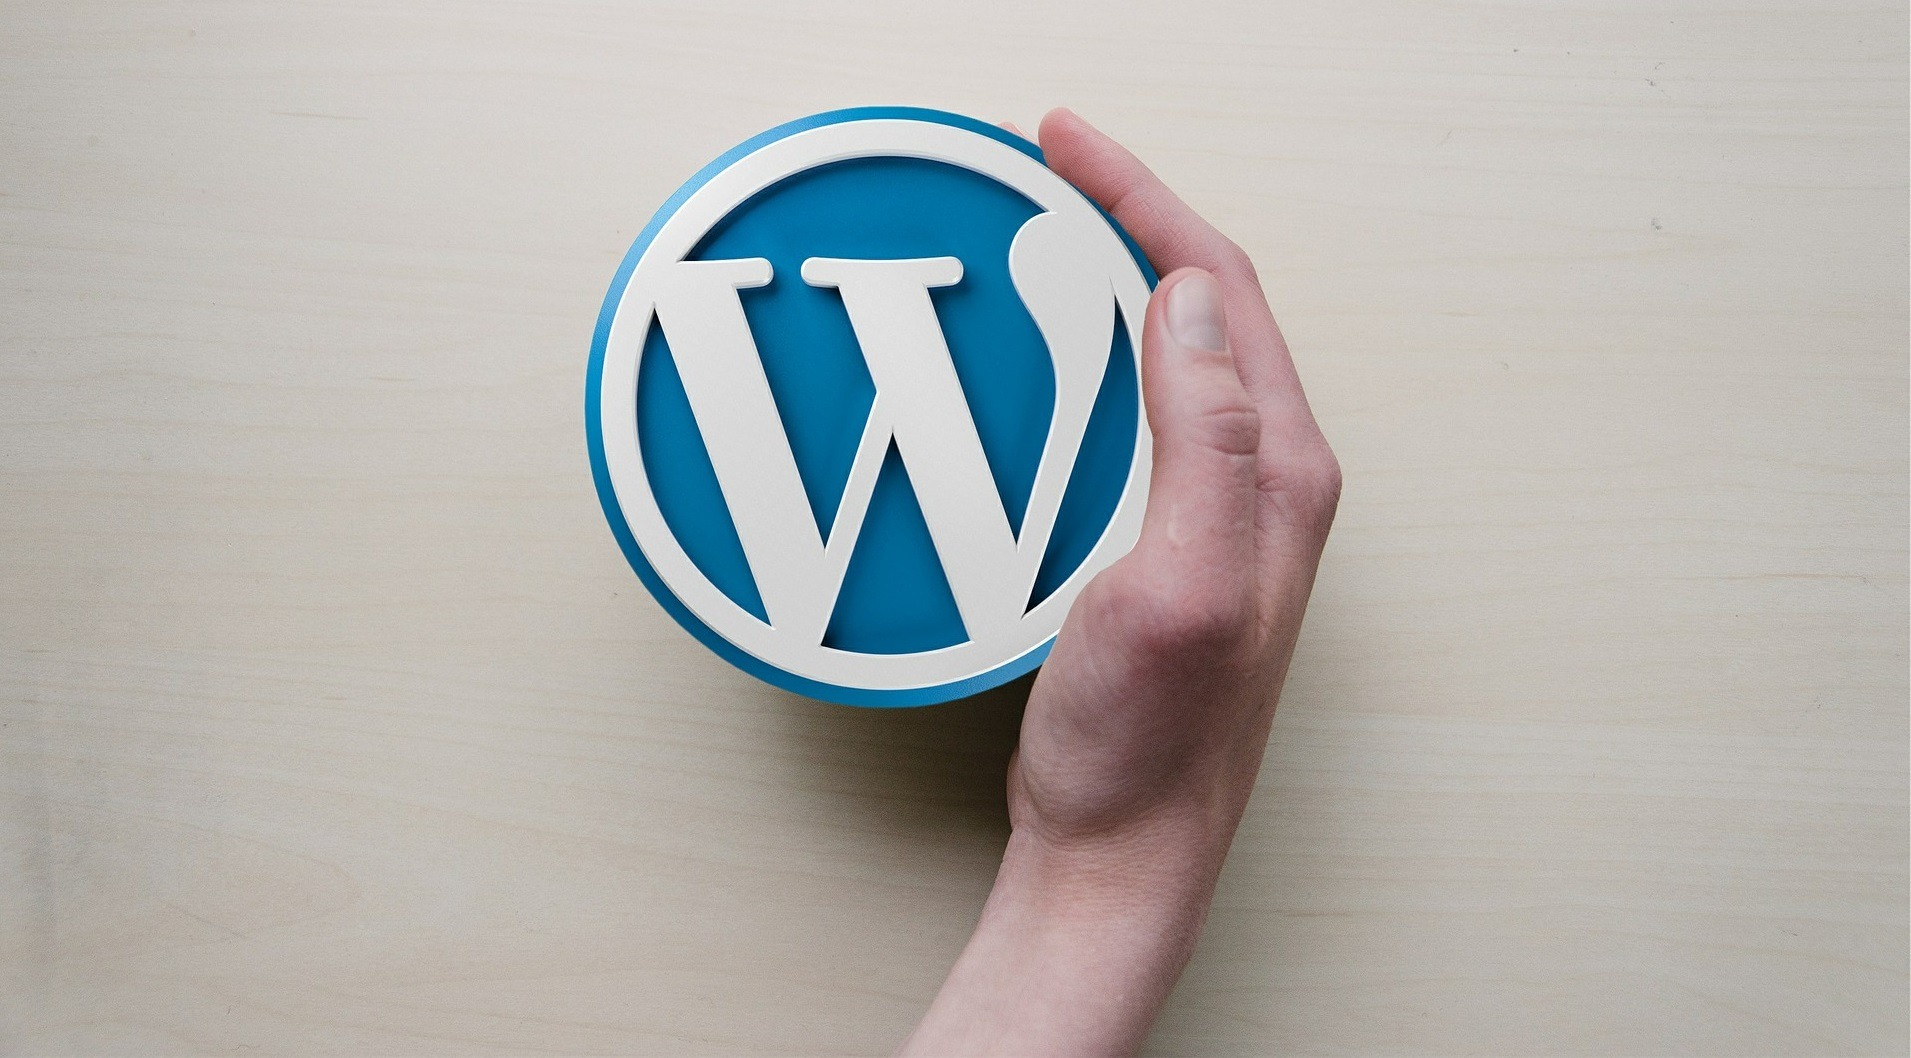 Read more about the article How to Build A WordPress Website for Free and within Just 30 Seconds (With Video)